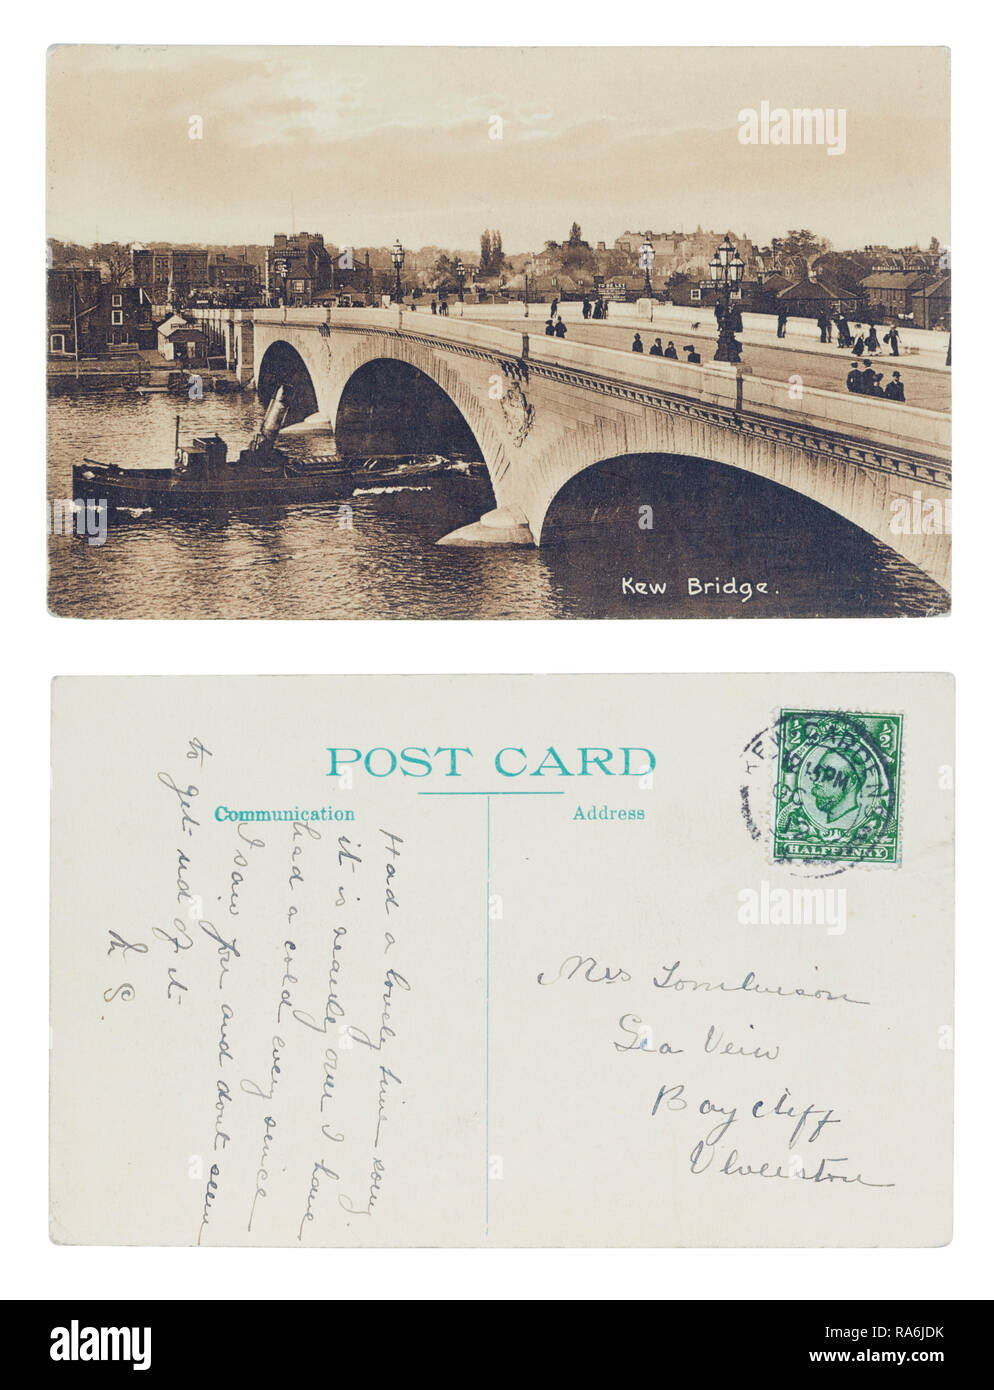 Postcard front and back of Kew Bridge in 1912 sent to Sea View, Baycliff, Ulverston - Stock Image